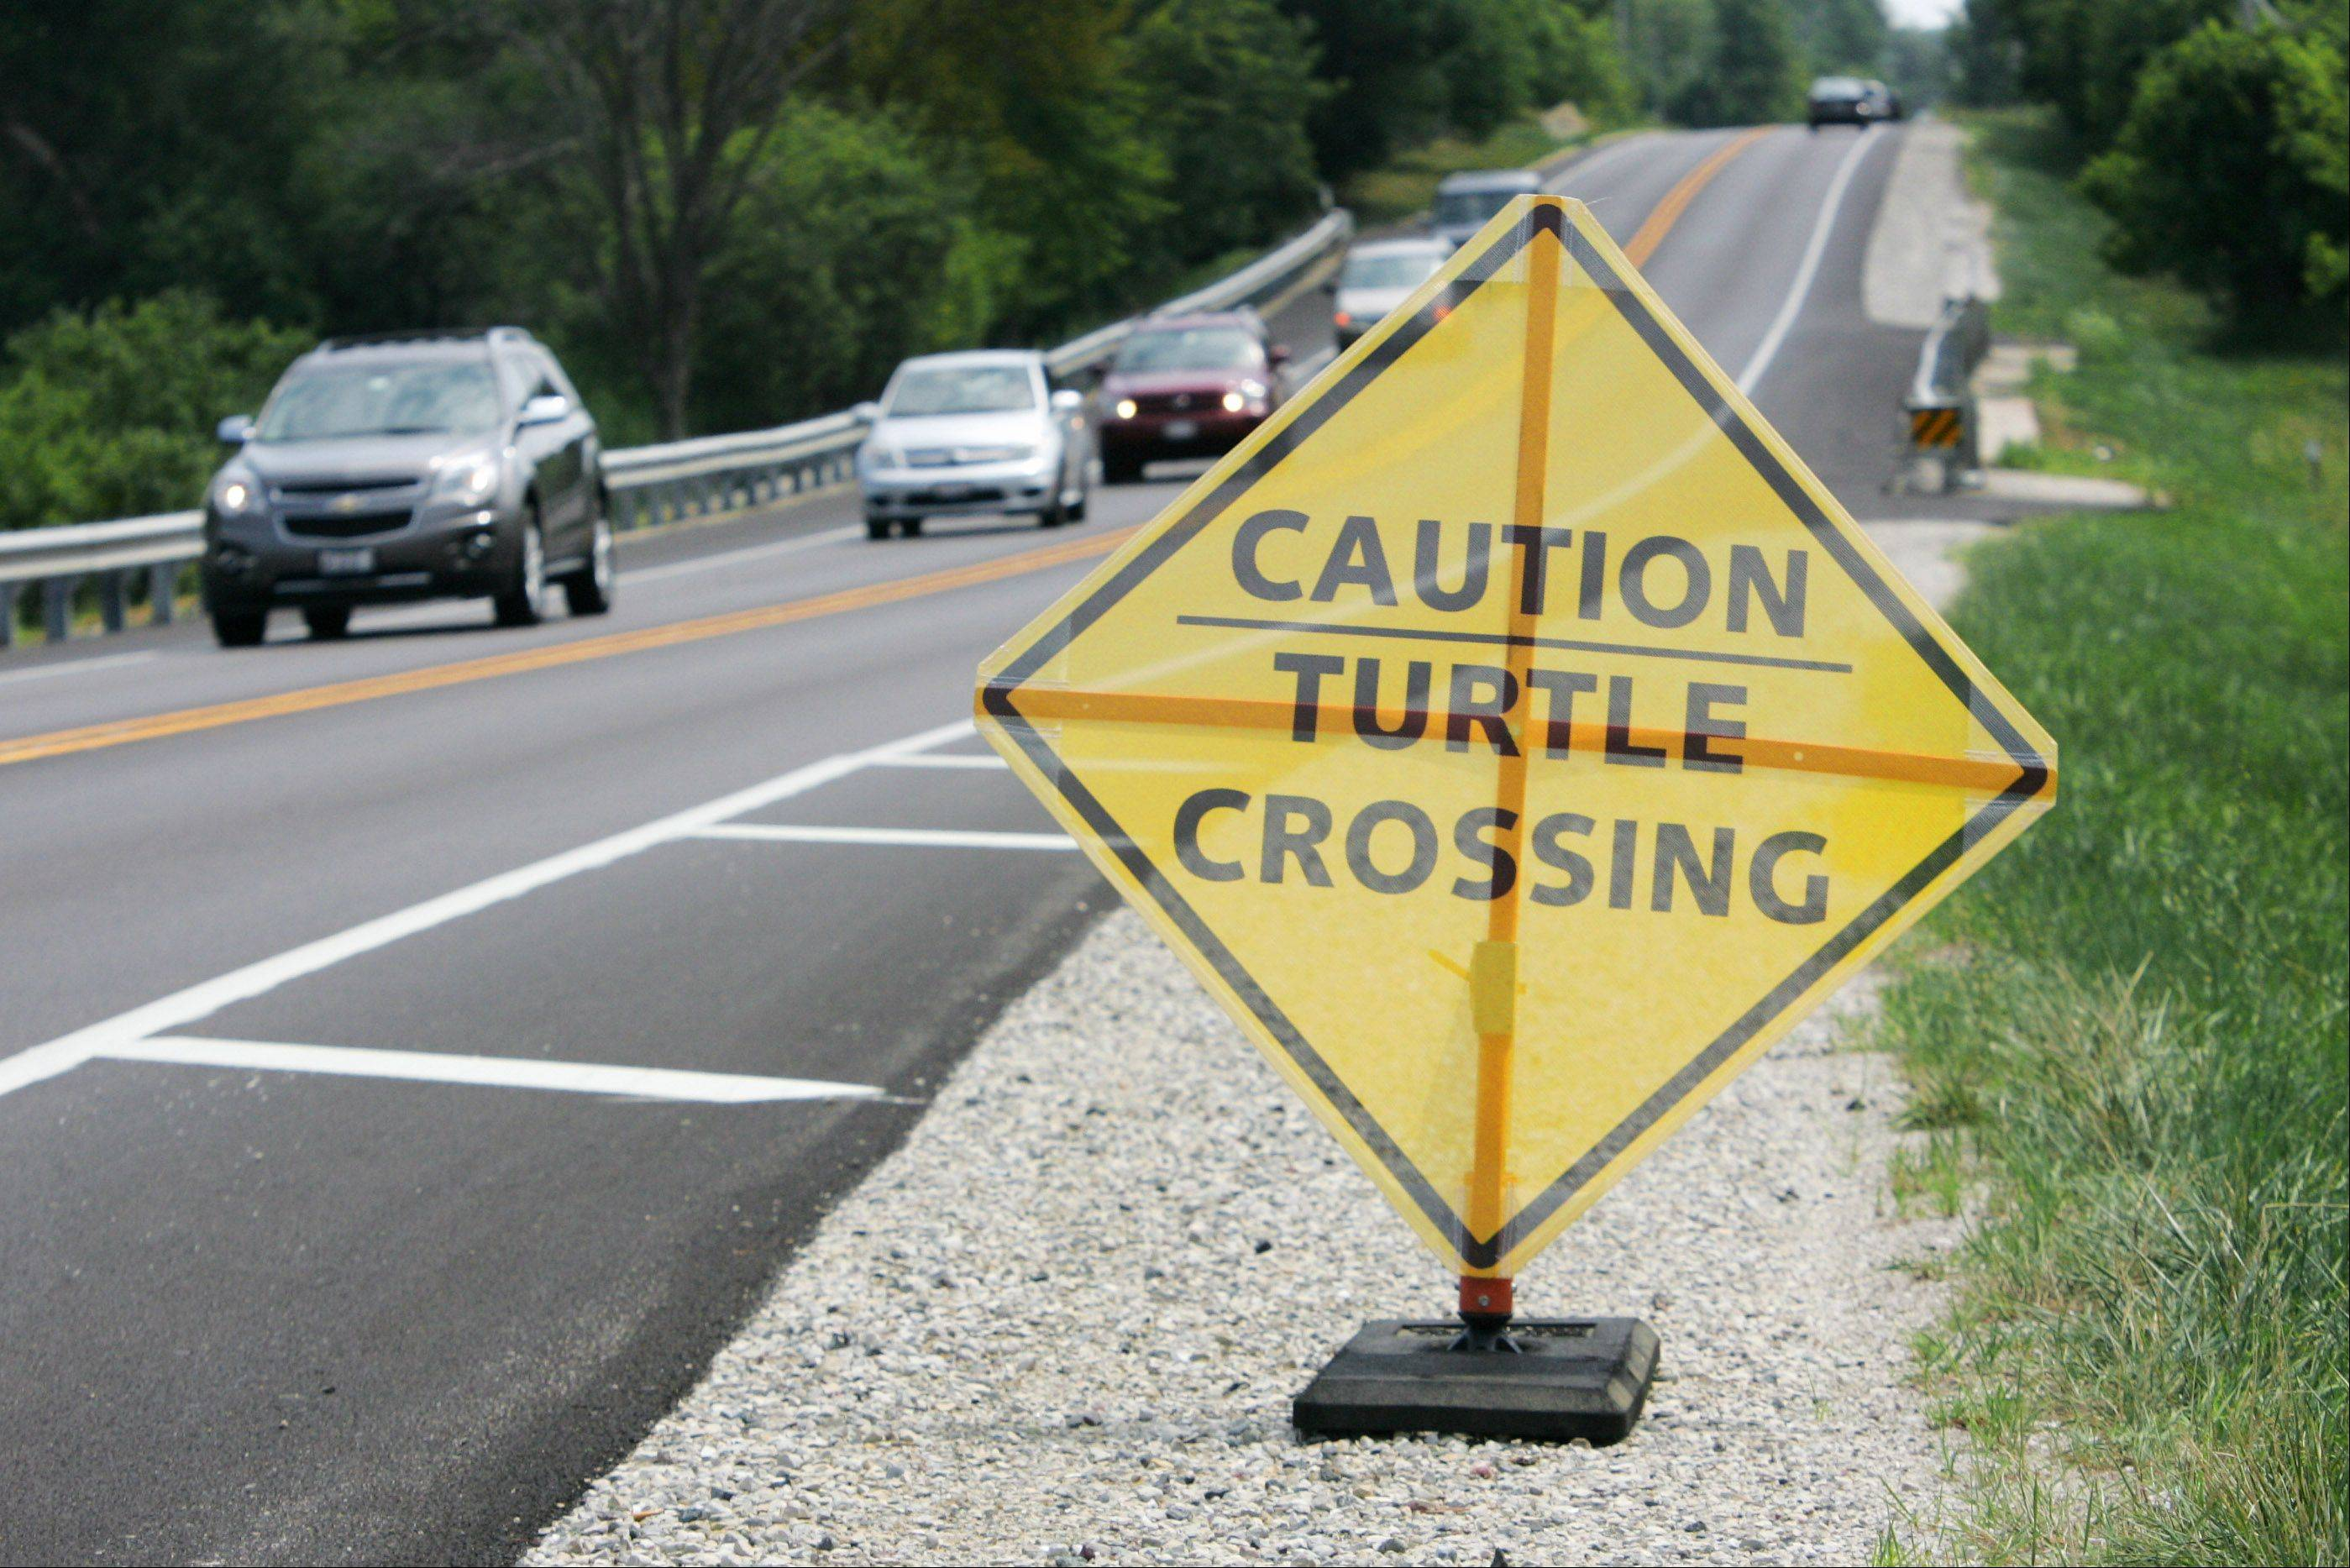 Due to recent efforts by concerned Lake County Wildlife Biologist Gary Glowacki, turtle crossing signs have been placed near Cuba Marsh along Ela Road in Lake Zurich.